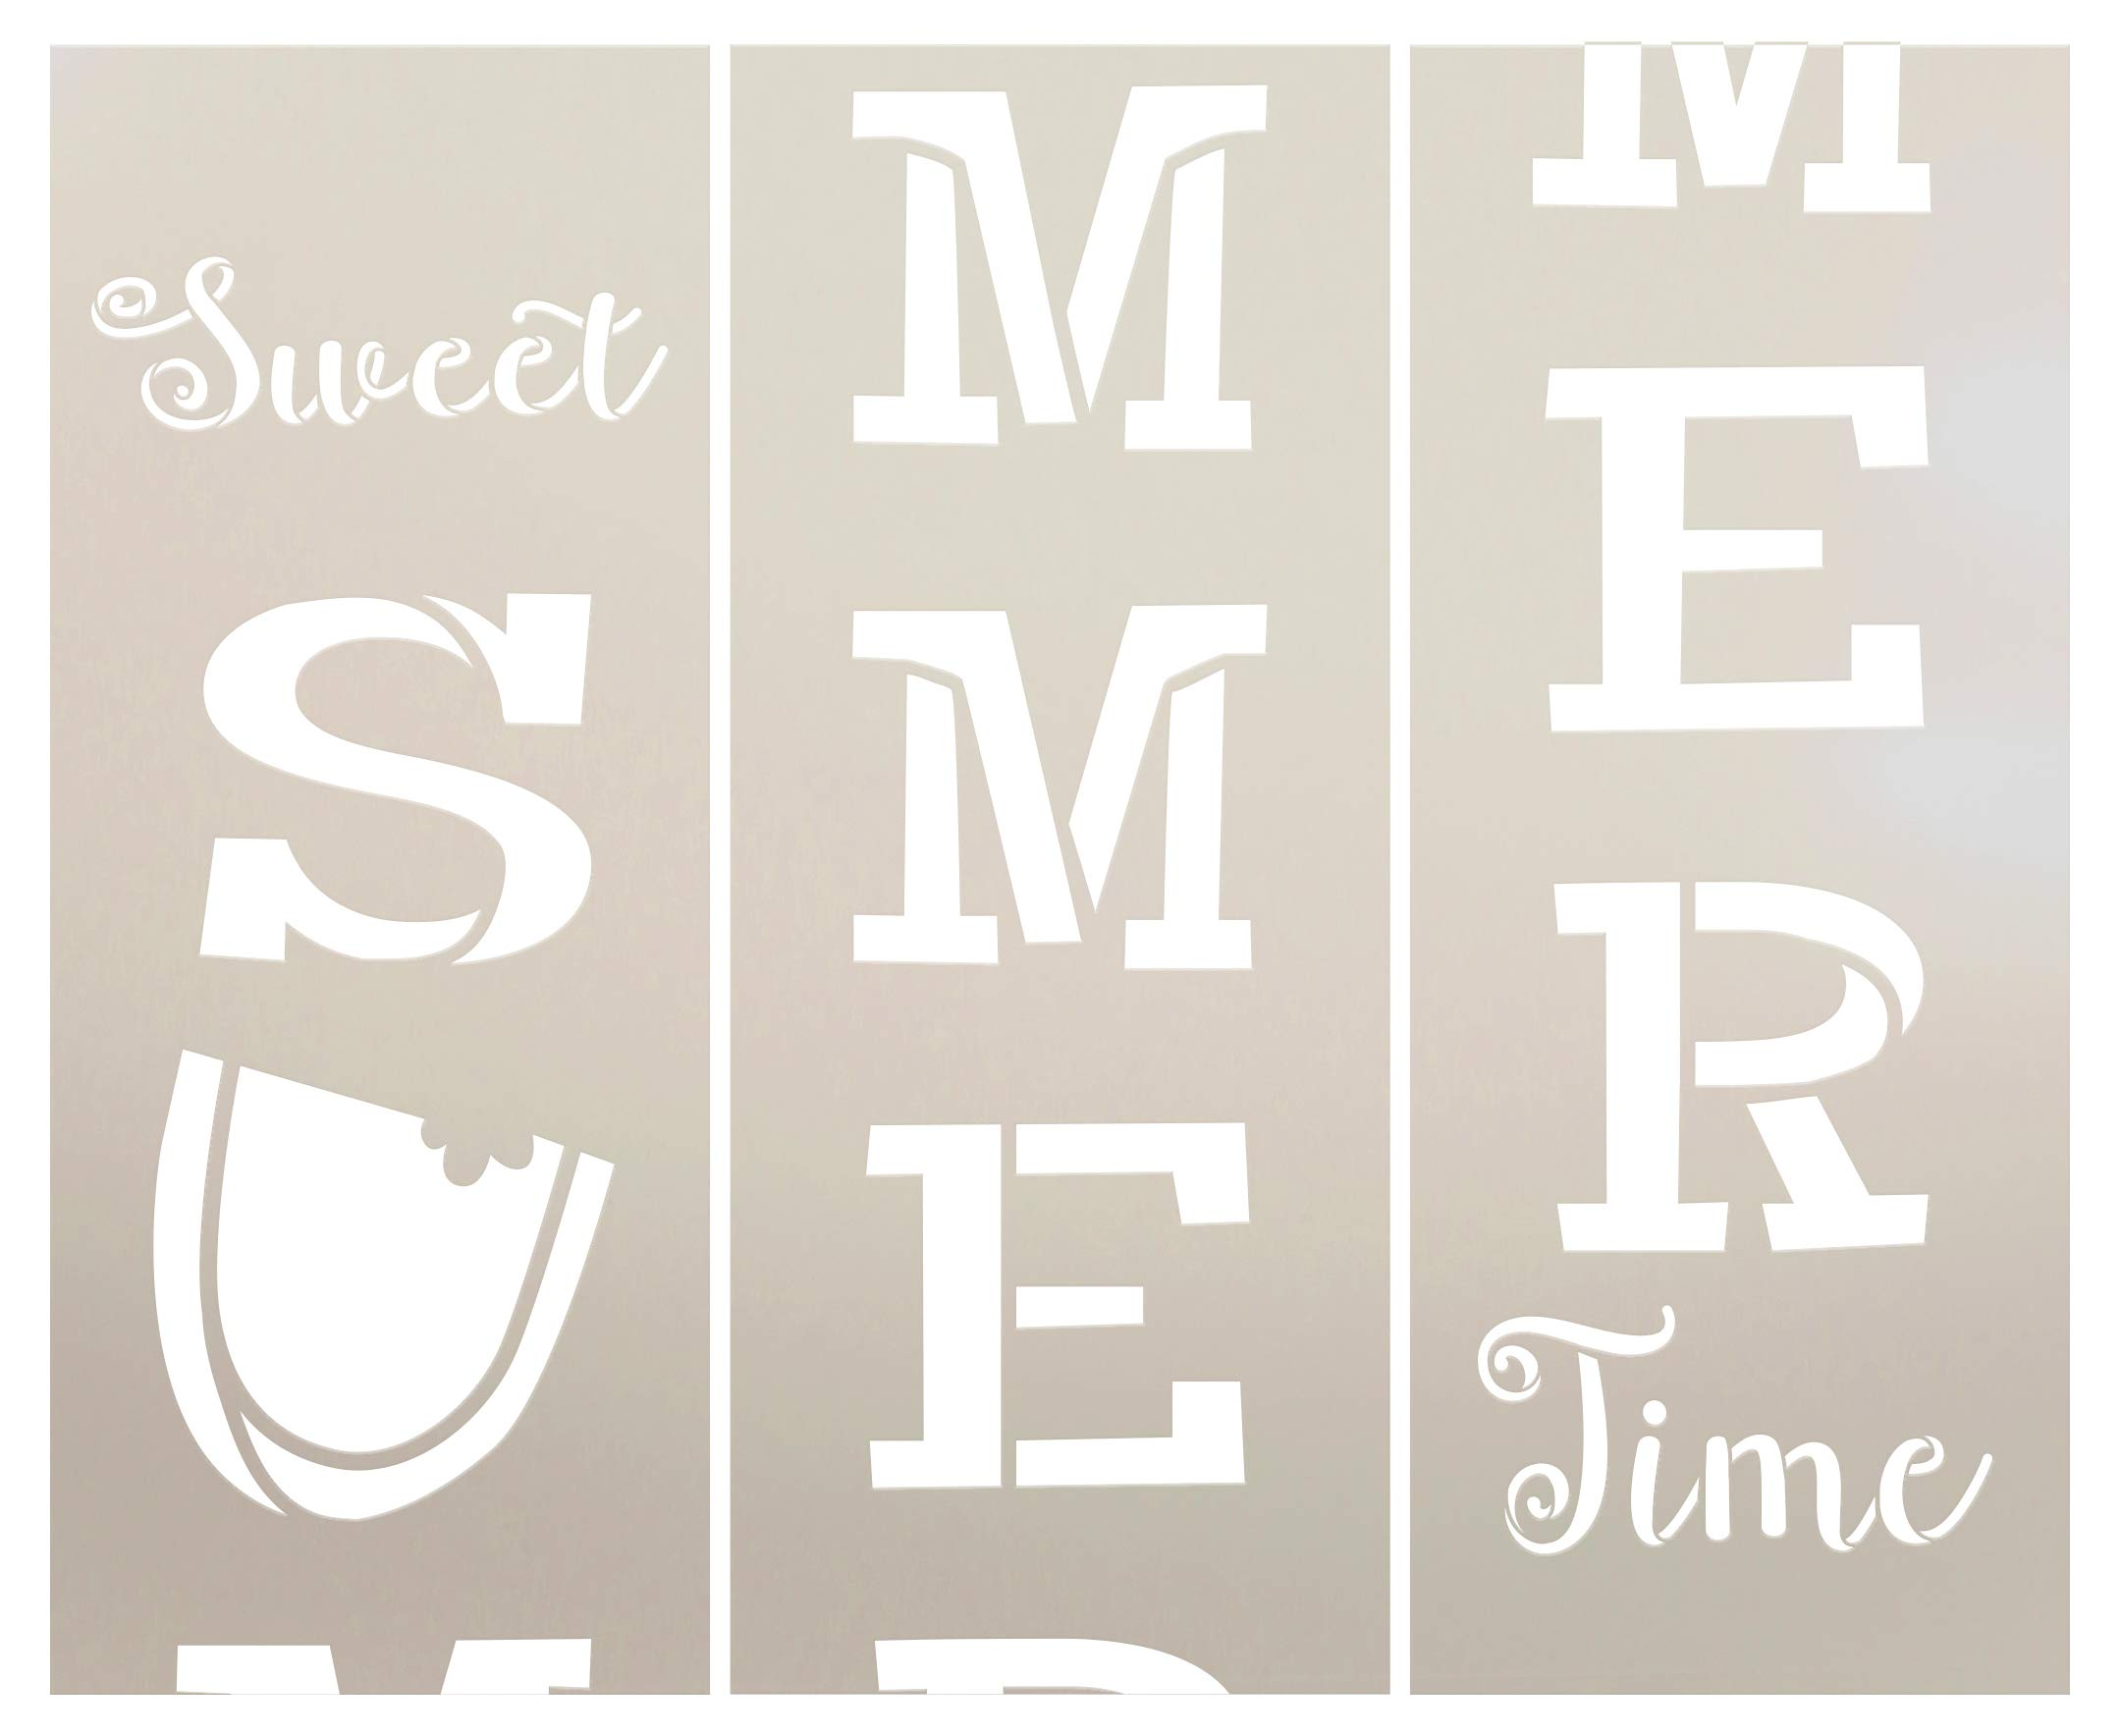 Sweet Summer Time Watermelon Vertical Tall Porch Stencil - for Making 6ft Vertical Porch Sign - 3 Part Stencil by StudioR12 | Reusable Mylar Template | Use to Paint Wood Signs - Pallets - DIY Spring